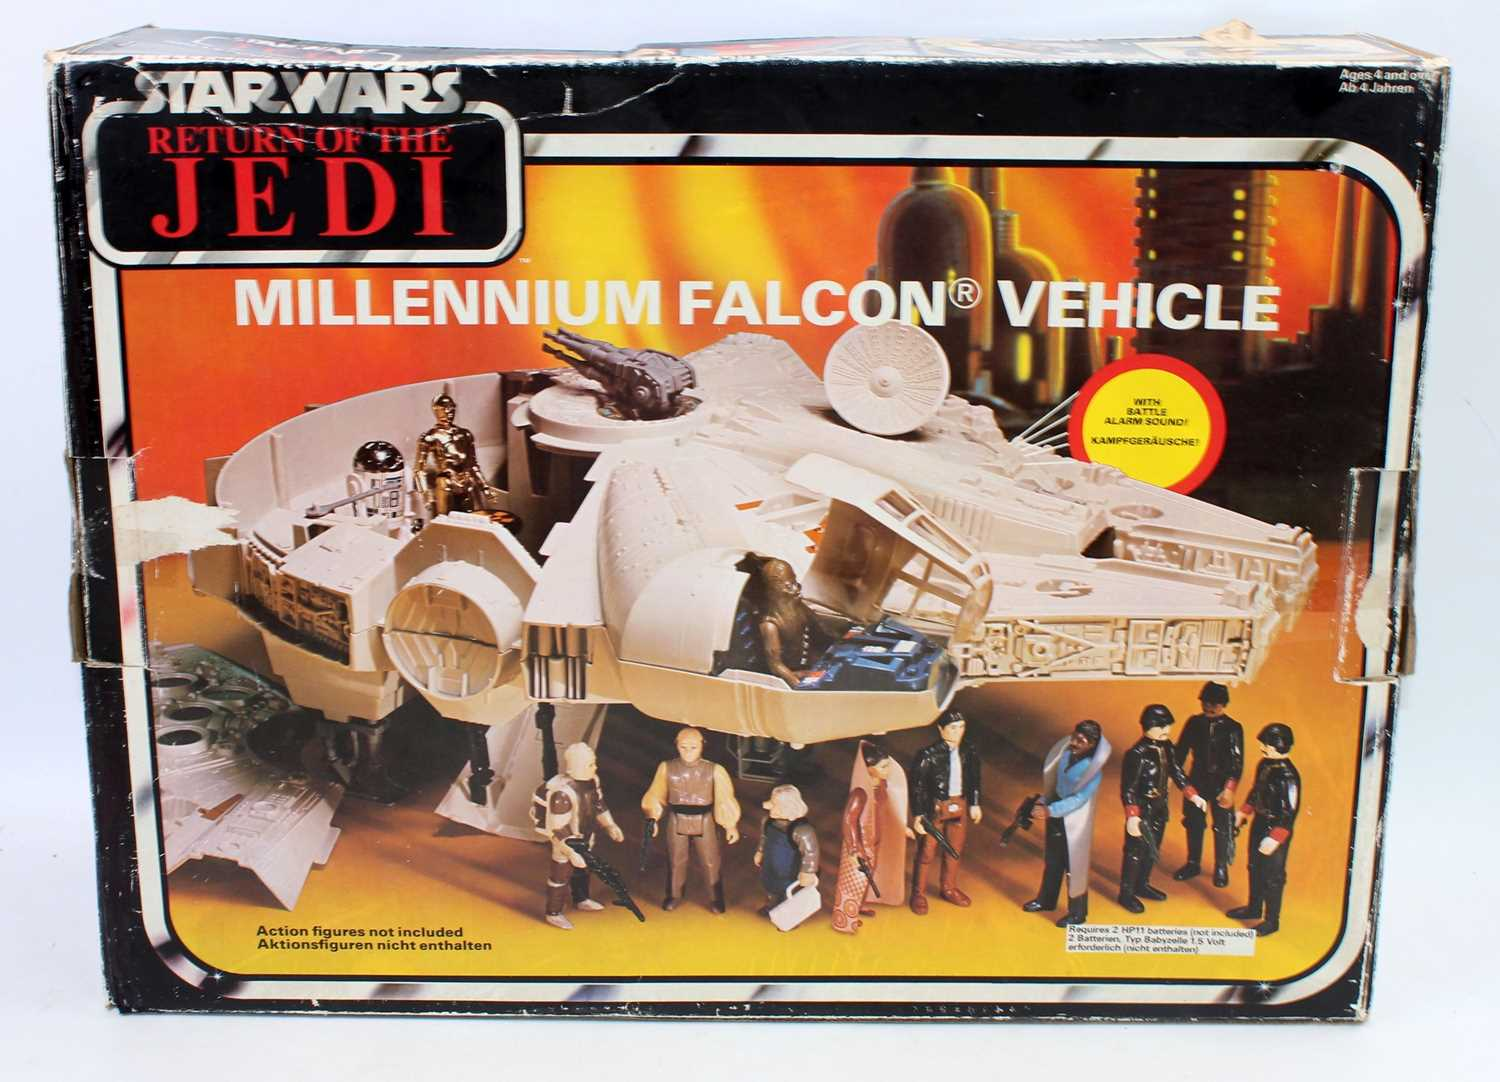 A Star Wars Palitoy Return of the Jedi Millennium Falcon boxed vehicle, appears complete and